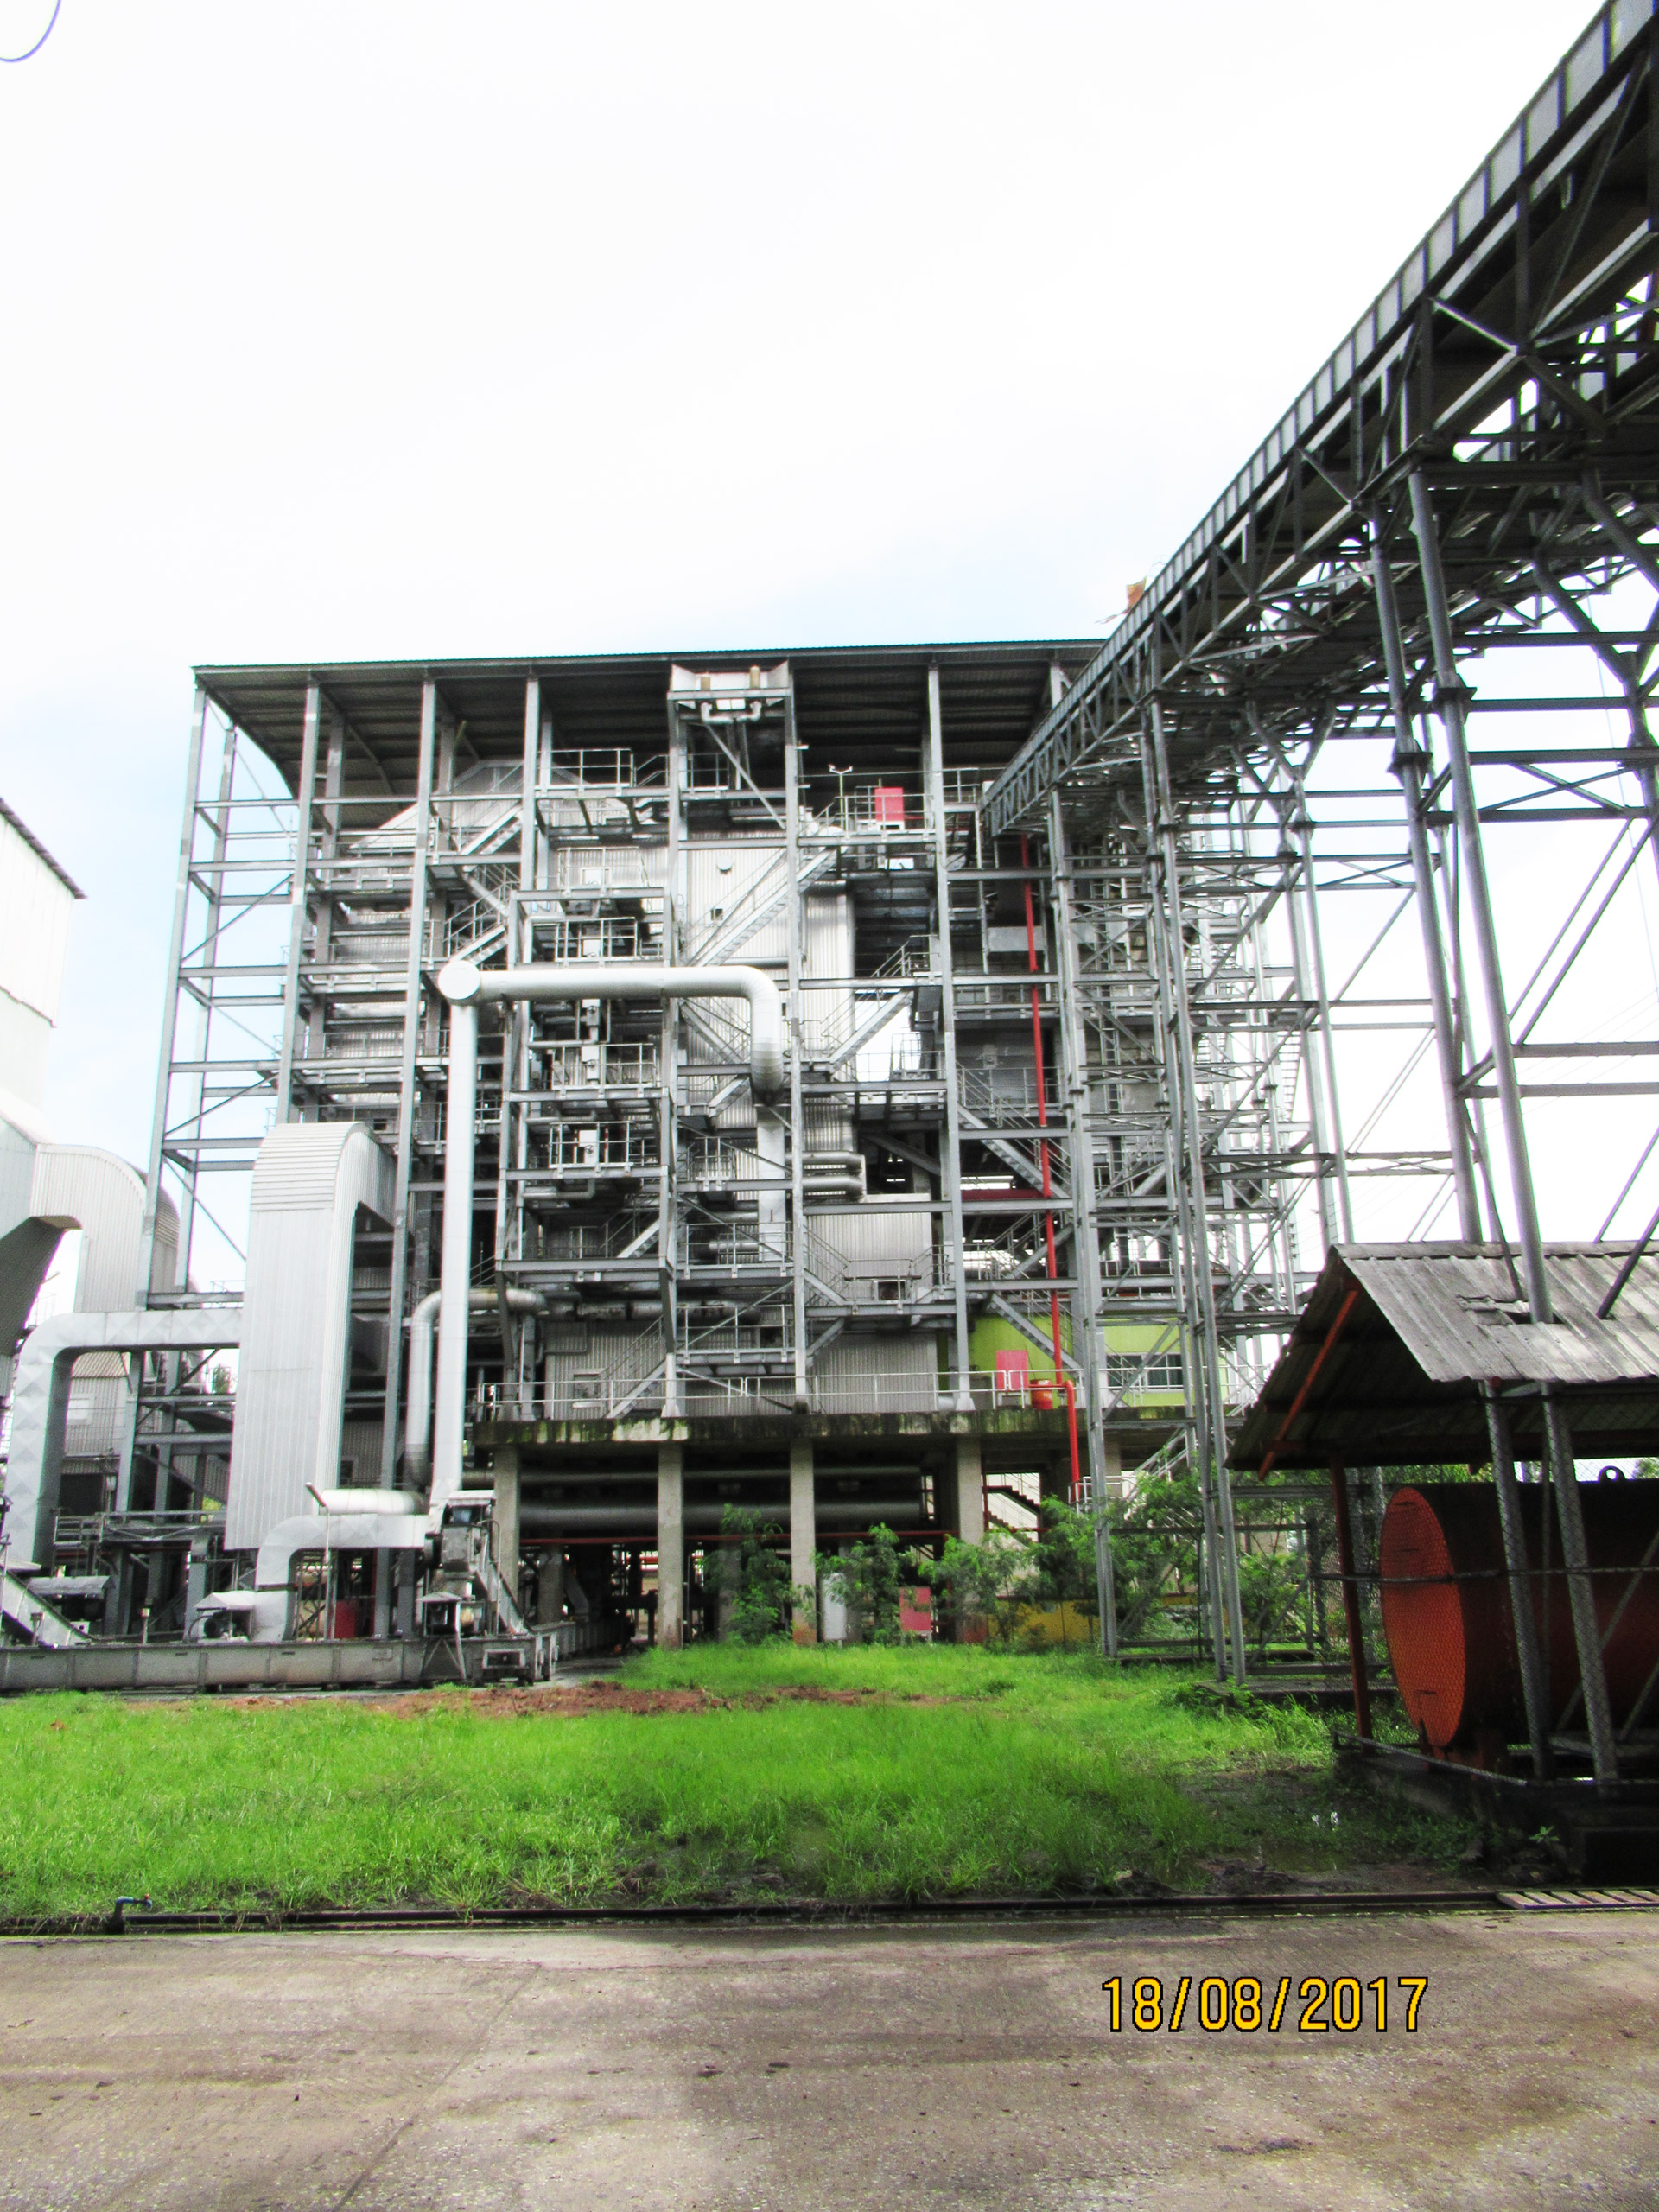 Udon Thani, Thailand Fuel: Rice Husk and Woodchips  Capacity: 9.9 MW, 50tons/hr boiler @ 97 bar(g), 520oC with step grate